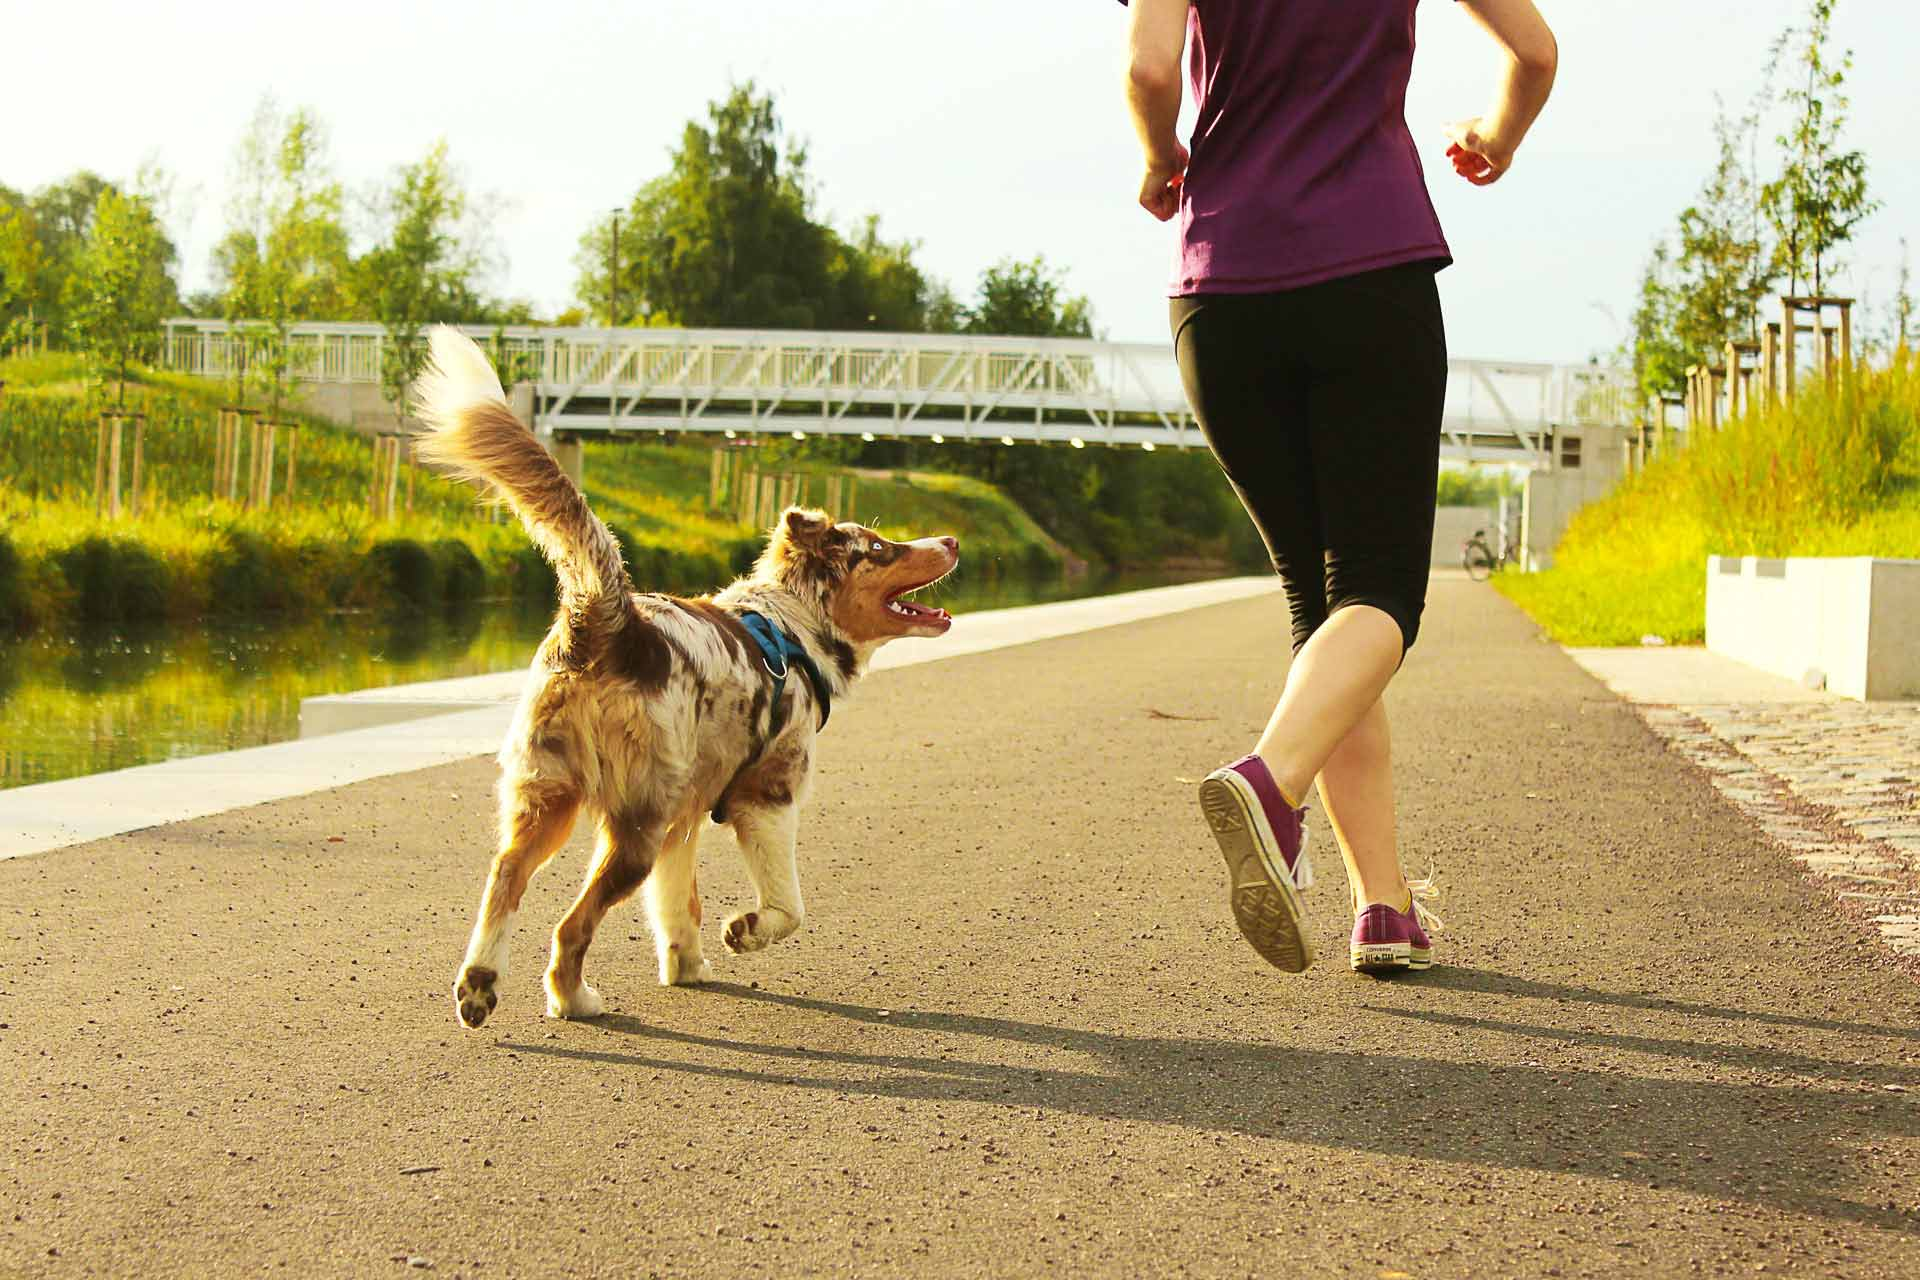 Dog jog: how to make the most of your canine running companion